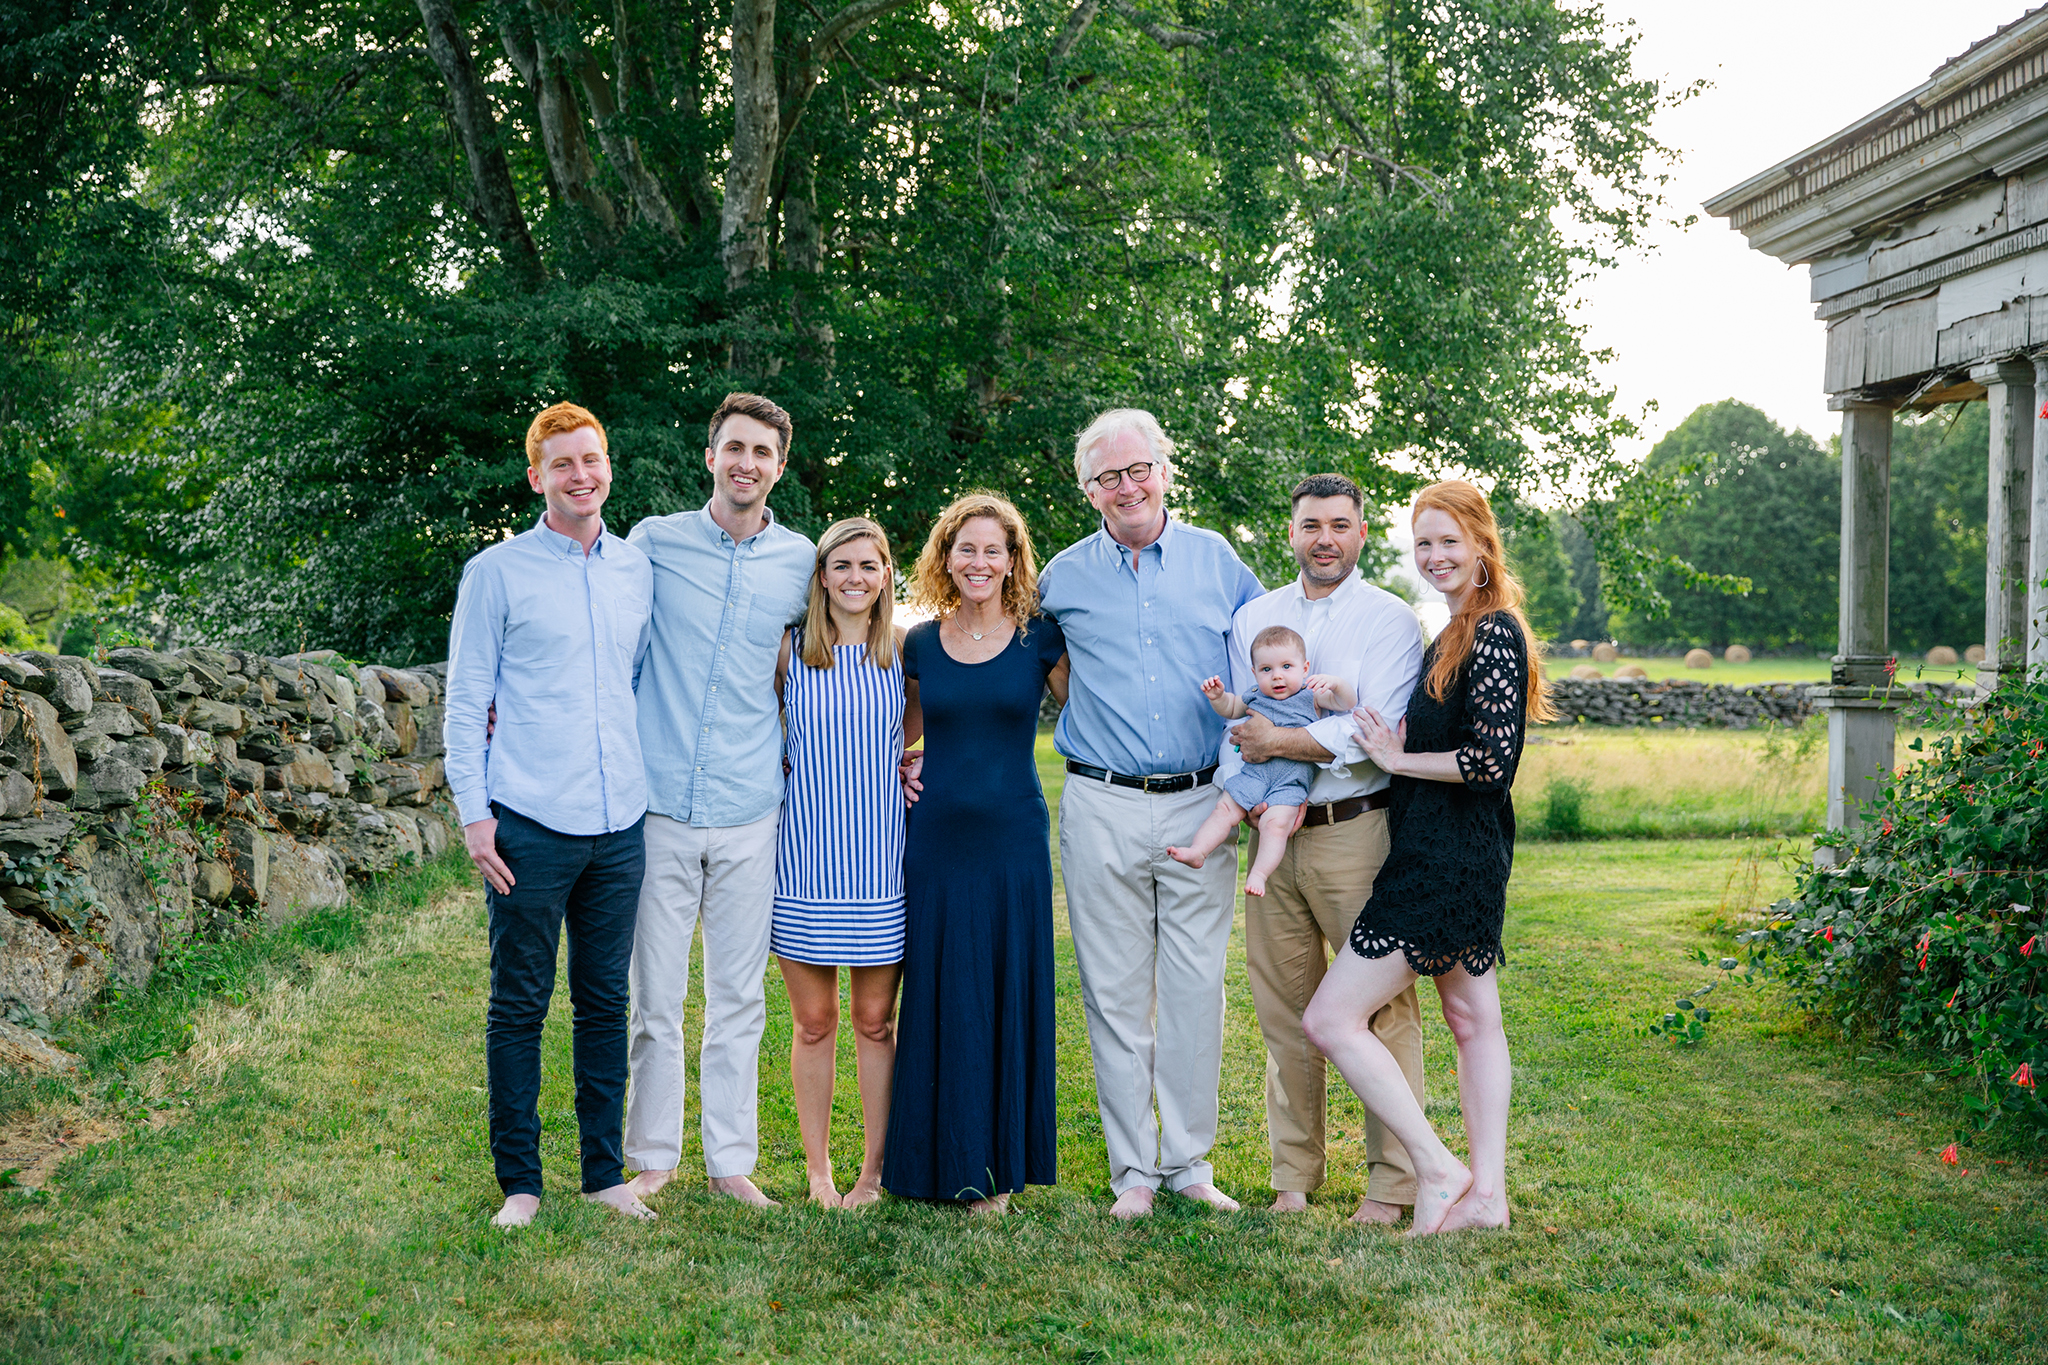 photography by mallory - large group family photos rhode island photographer.jpg